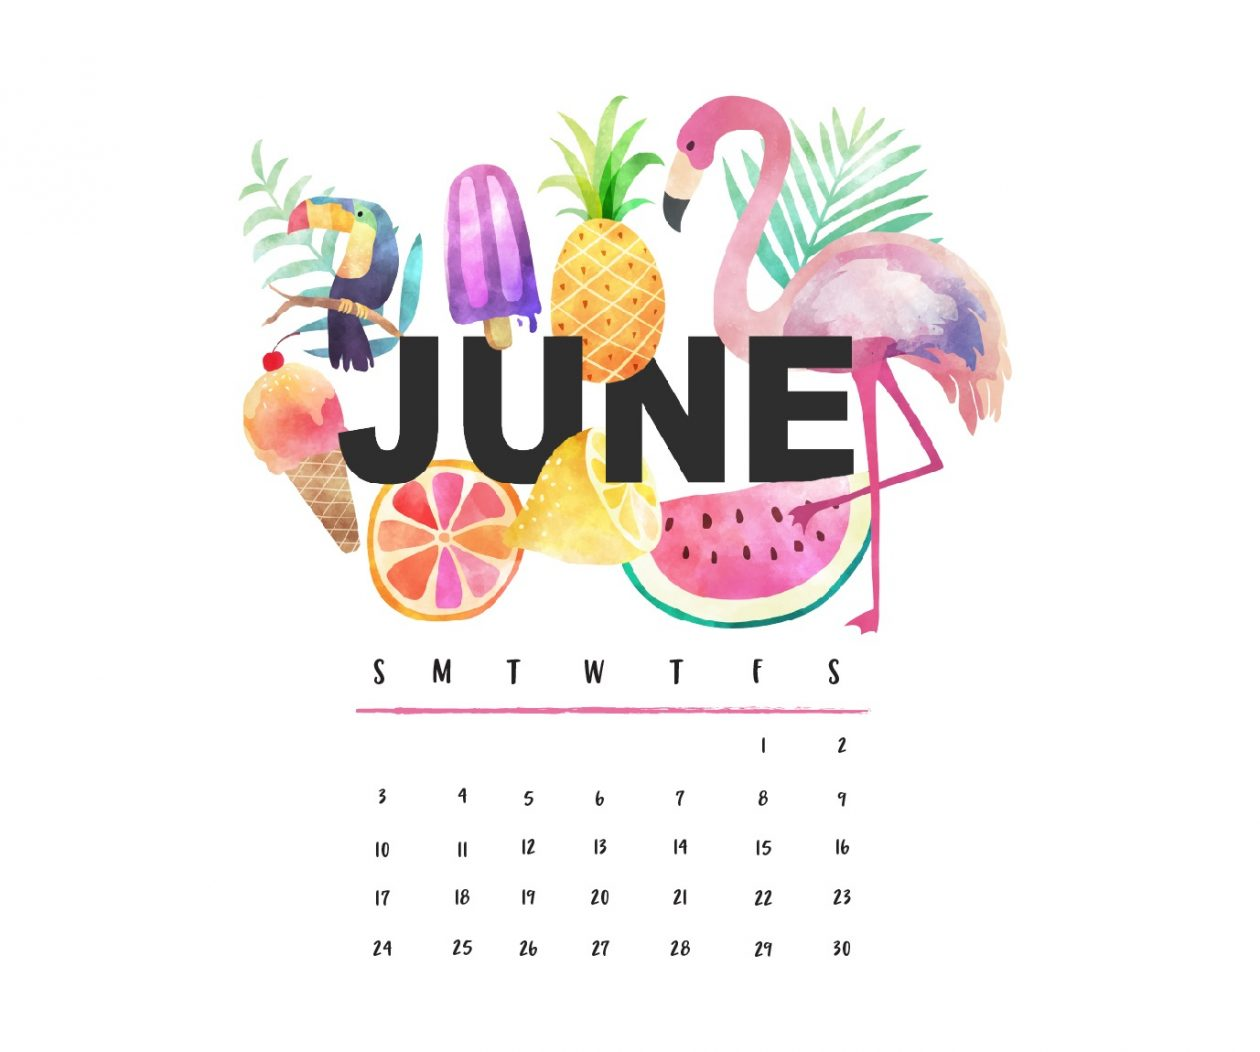 June 2018 Calendar Wallpaper   Best Calendar Printable PDF 1260x1052